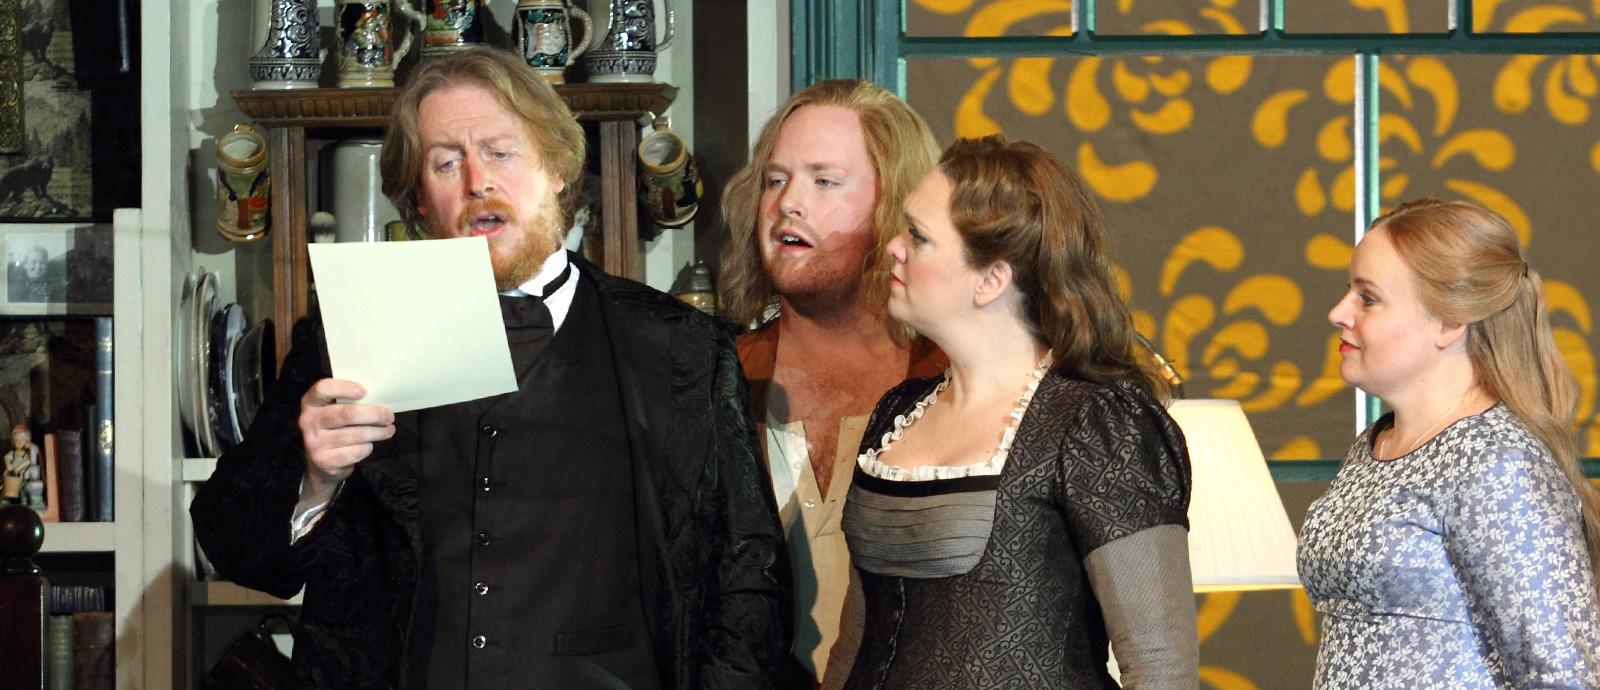 ENO's The Mastersingers of Nuremberg- Iain Paterson as Hans Sachs, Wendy Bryn Harmer as Eva, Nicky Spence as David and Madeleine Shaw as Magdalene. Photo by Catherine Ashmore.